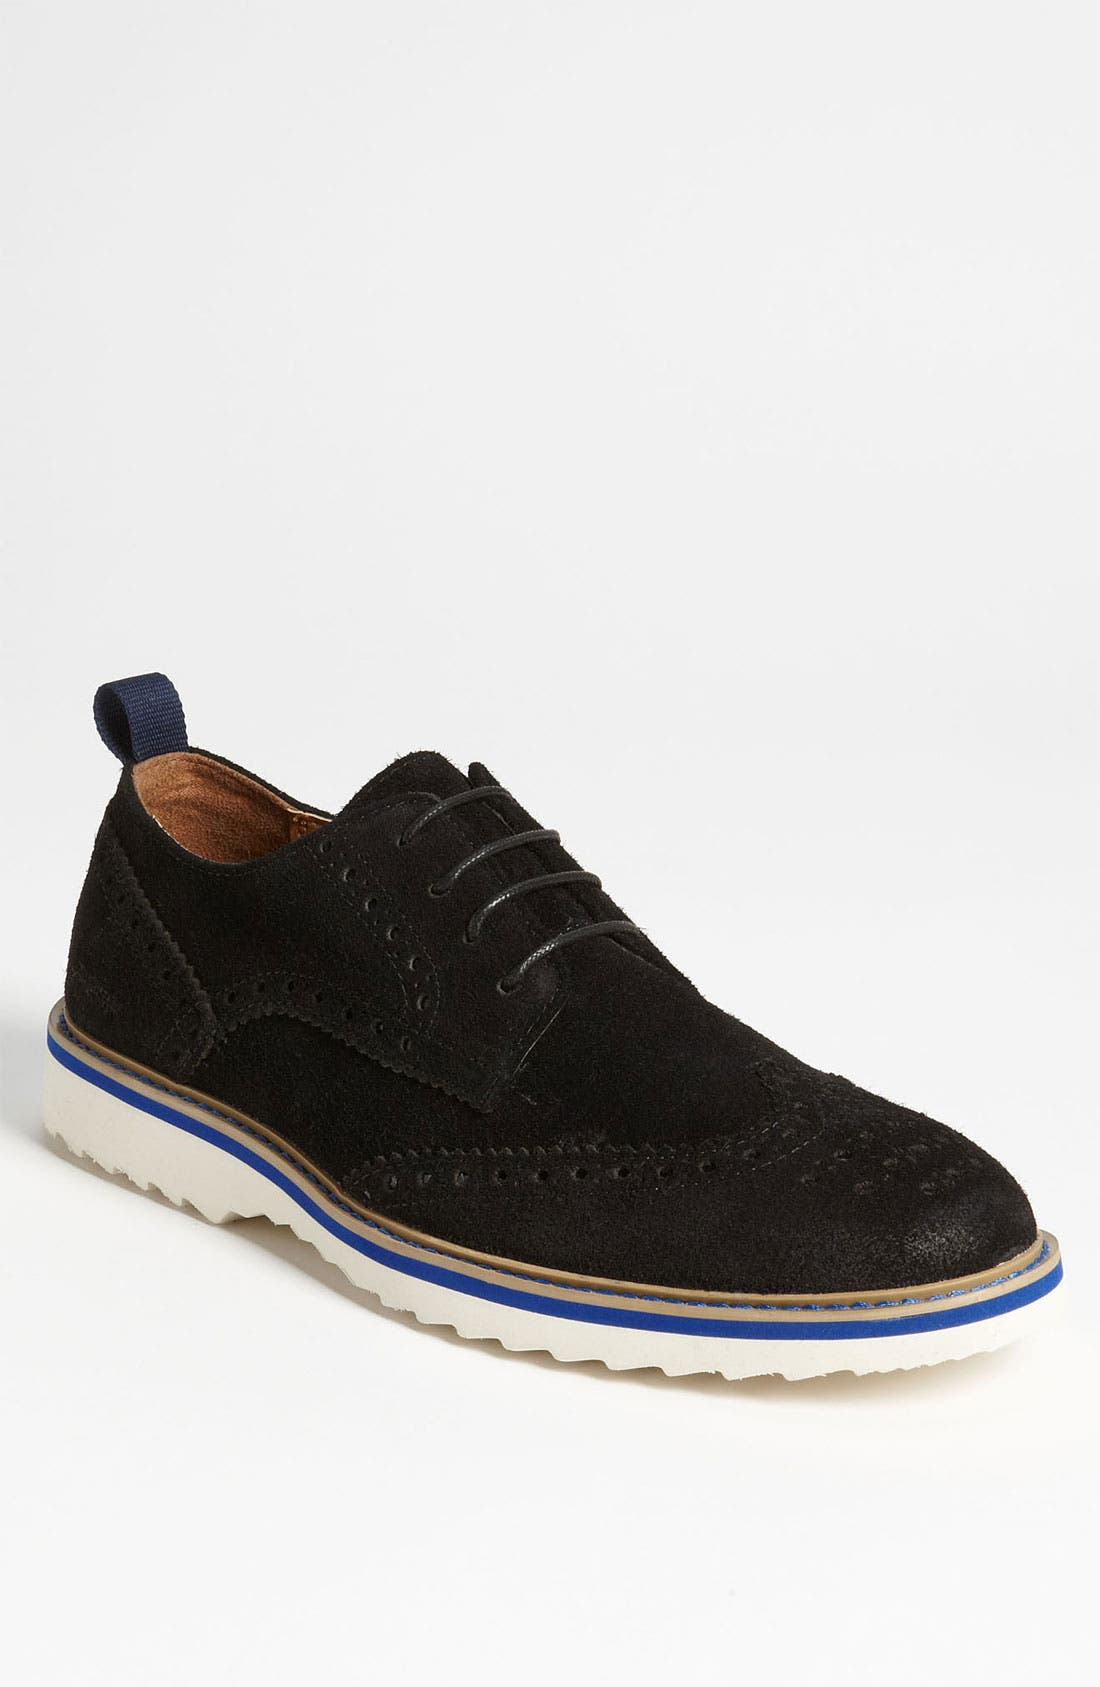 Alternate Image 1 Selected - Kenneth Cole Reaction 'Media Hype' Wingtip